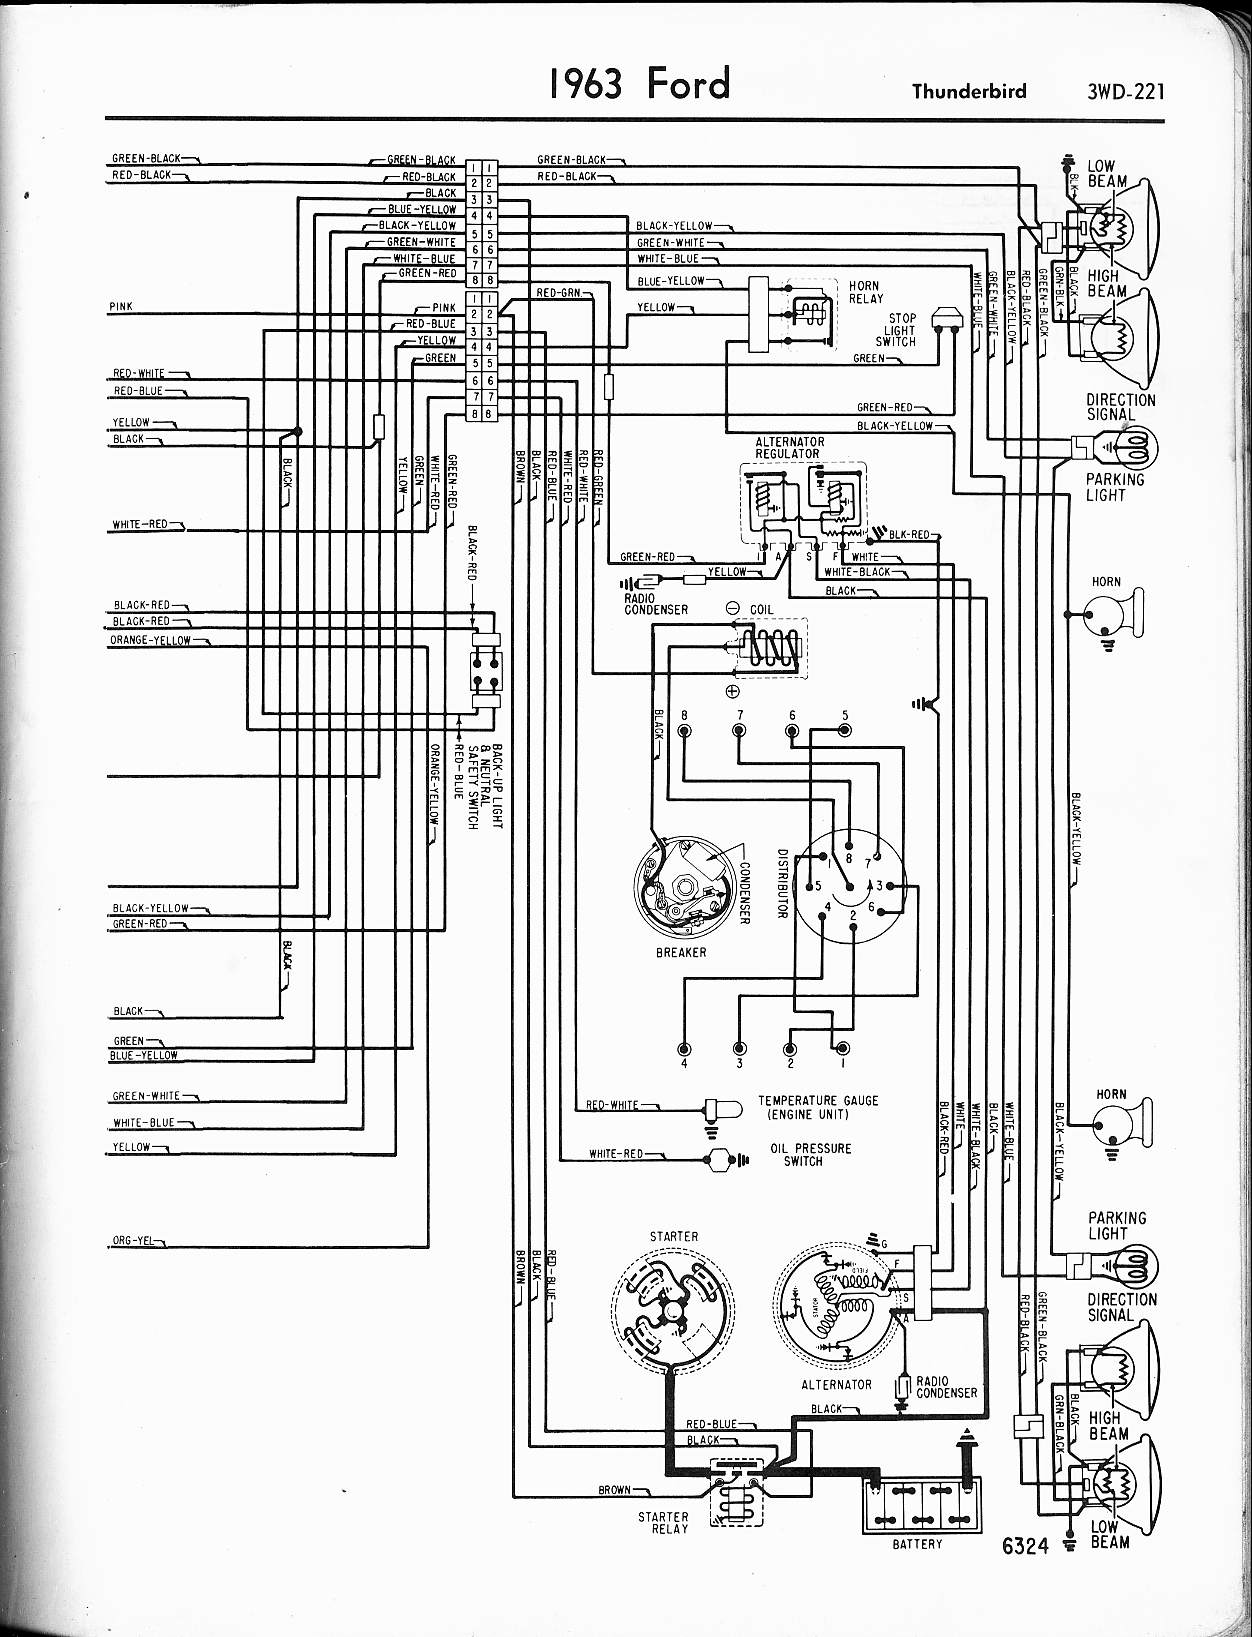 MWire5765 221 57 65 ford wiring diagrams 1963 ford wiring diagram at crackthecode.co